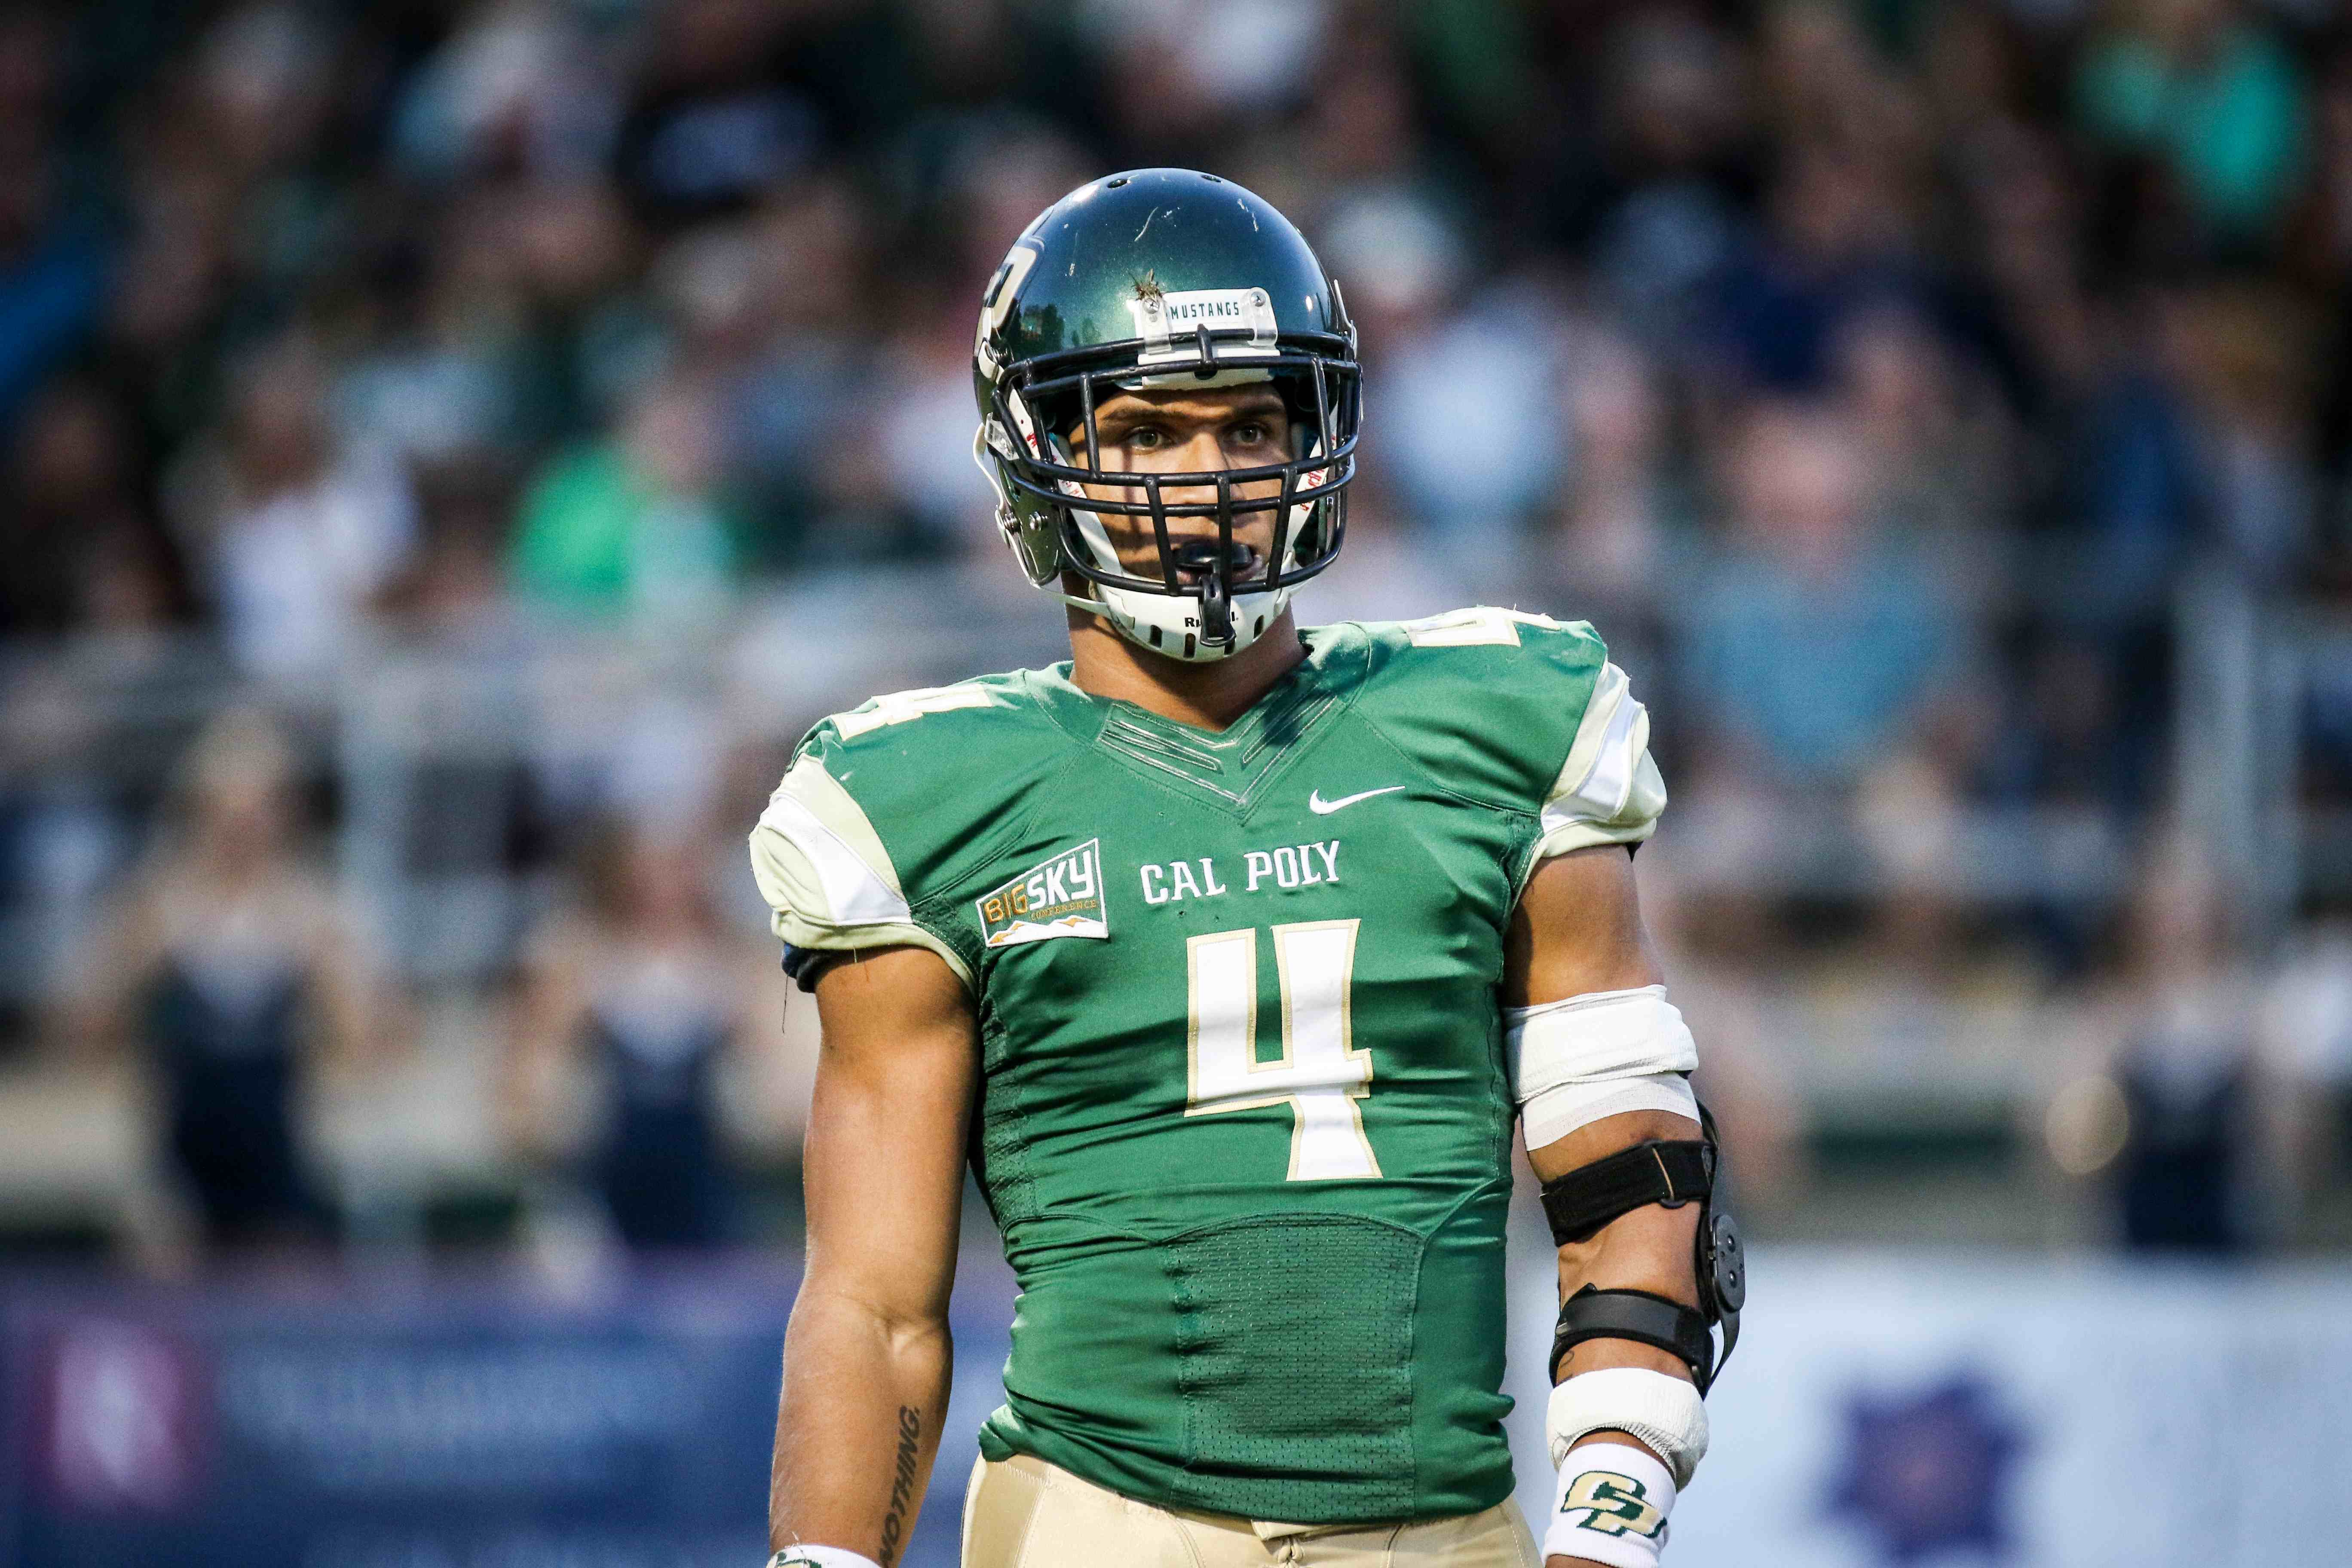 Cal Poly Football Keep Themselves In The Title Hunt